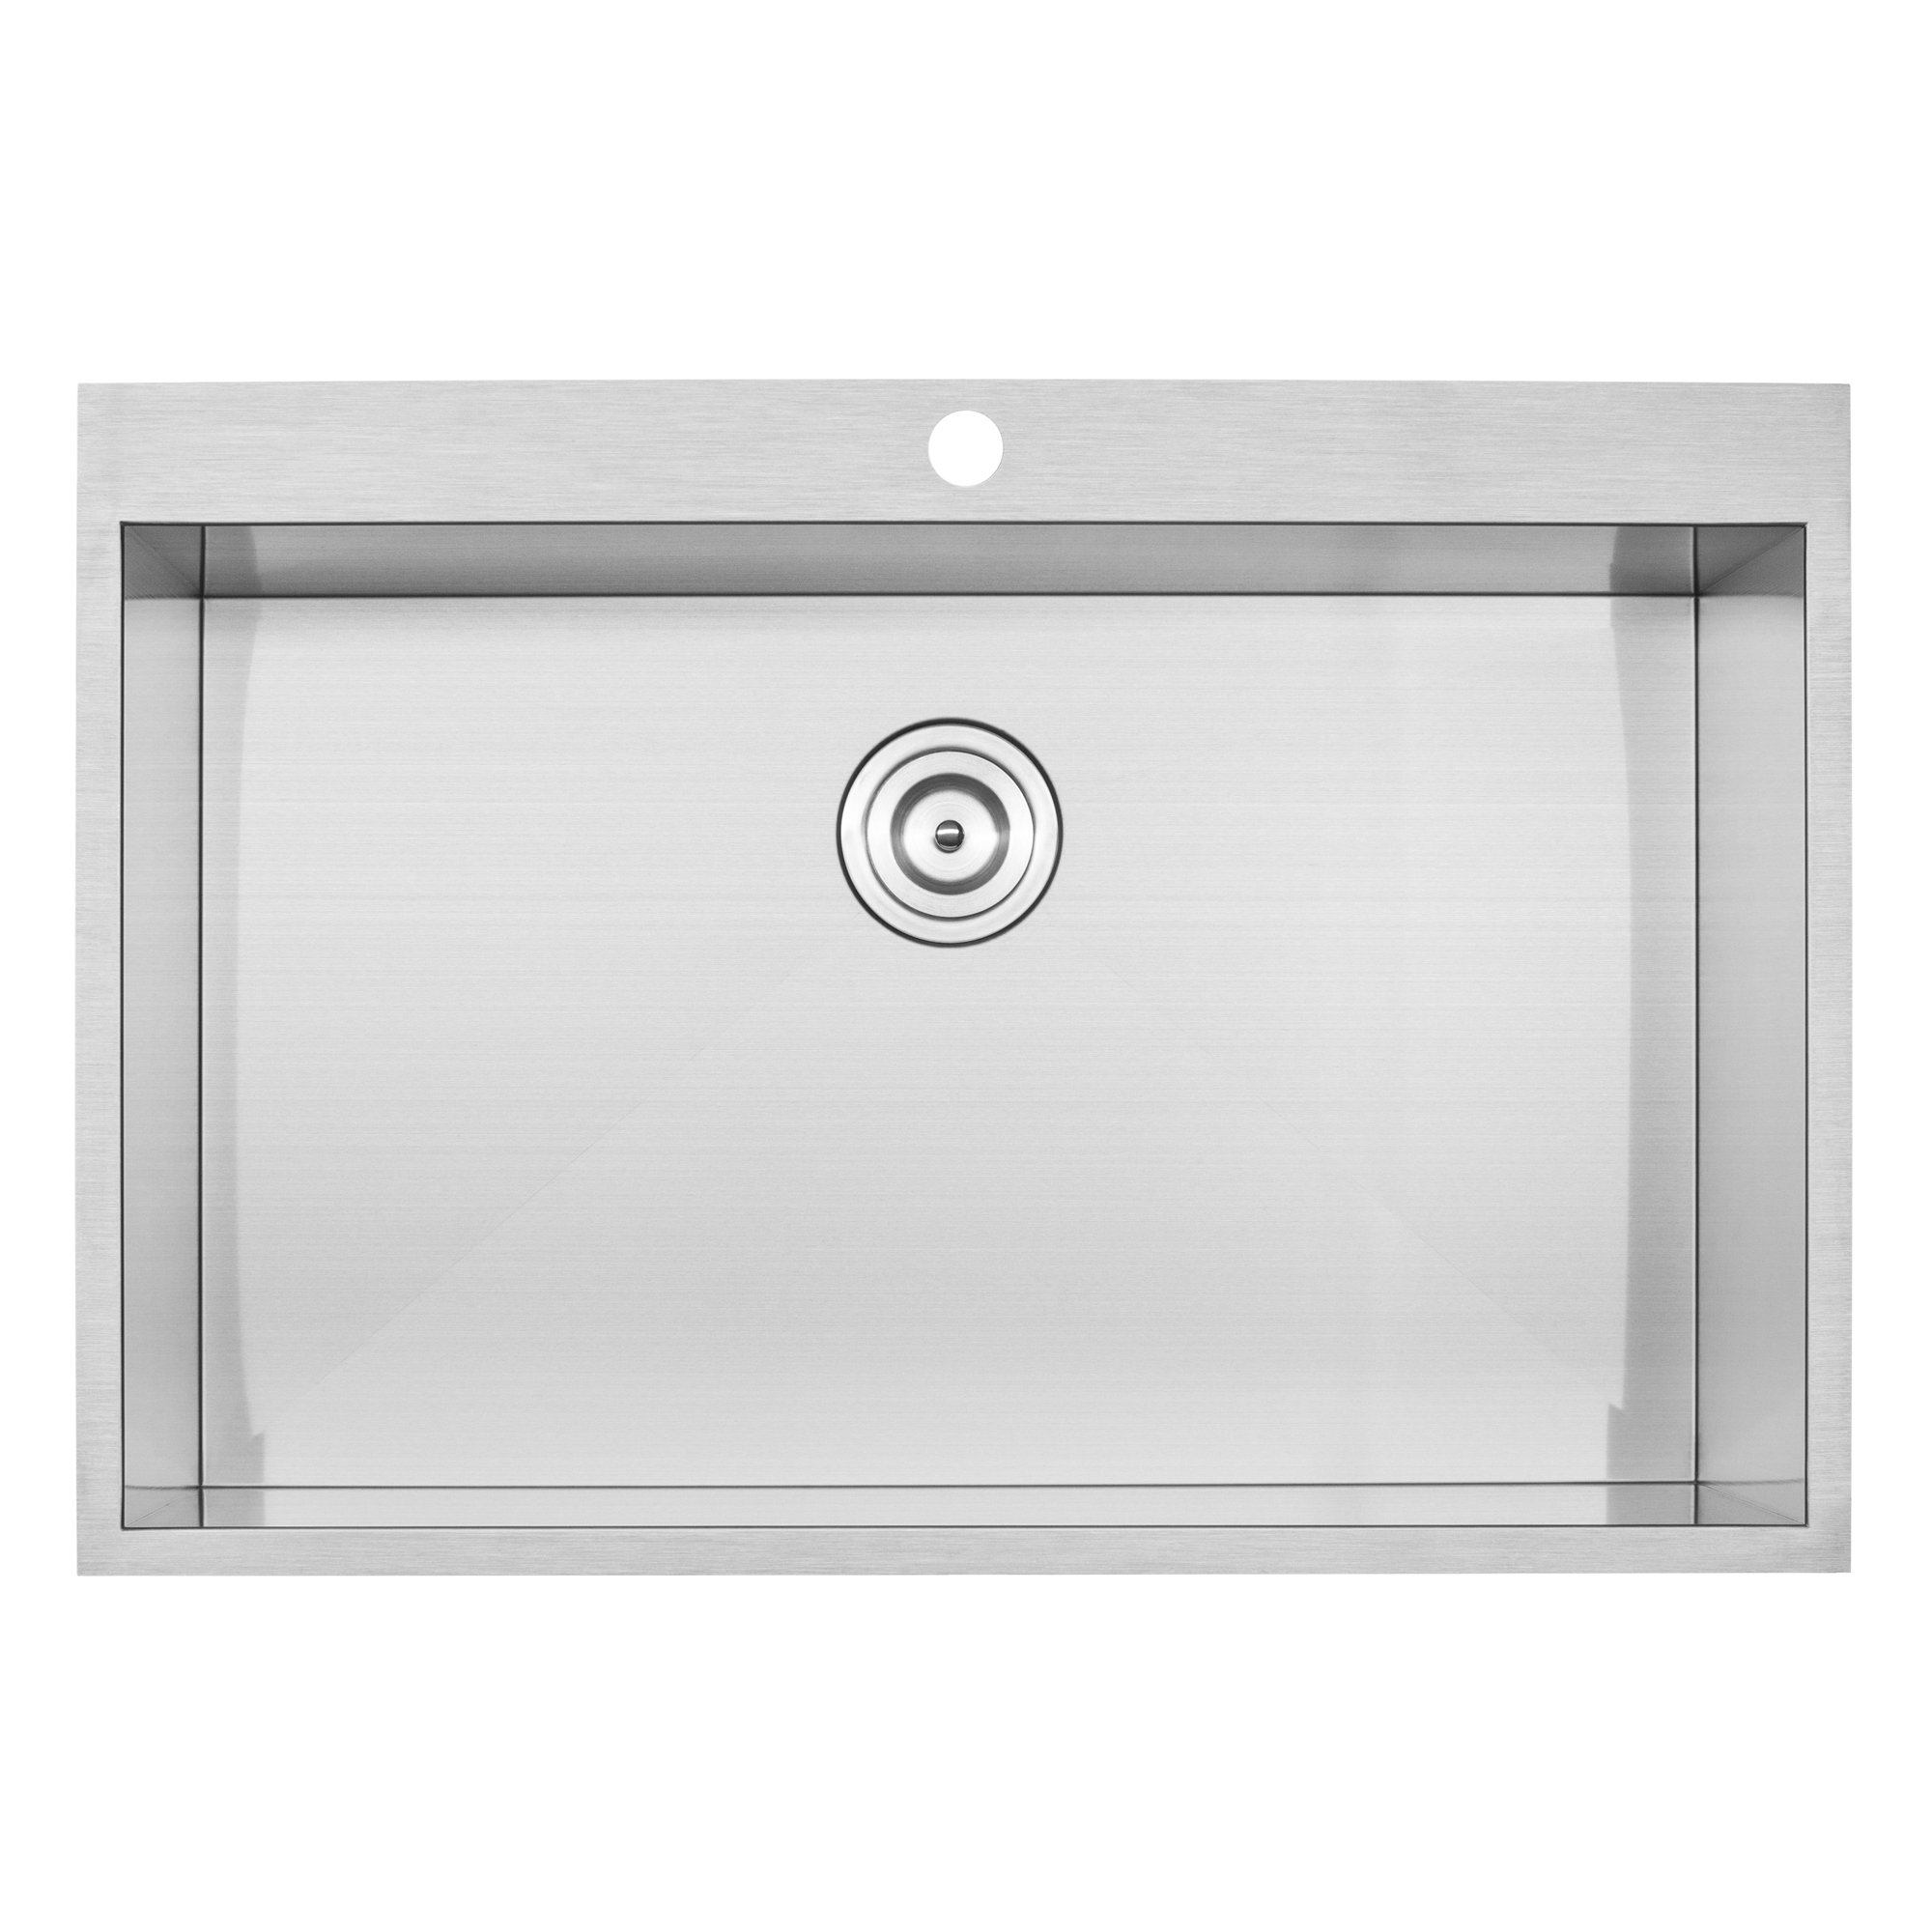 Phoenix 18 Gauge 304 Grade Stainless Steel Single Bowl Overmount Kitchen Sink by Phoenix